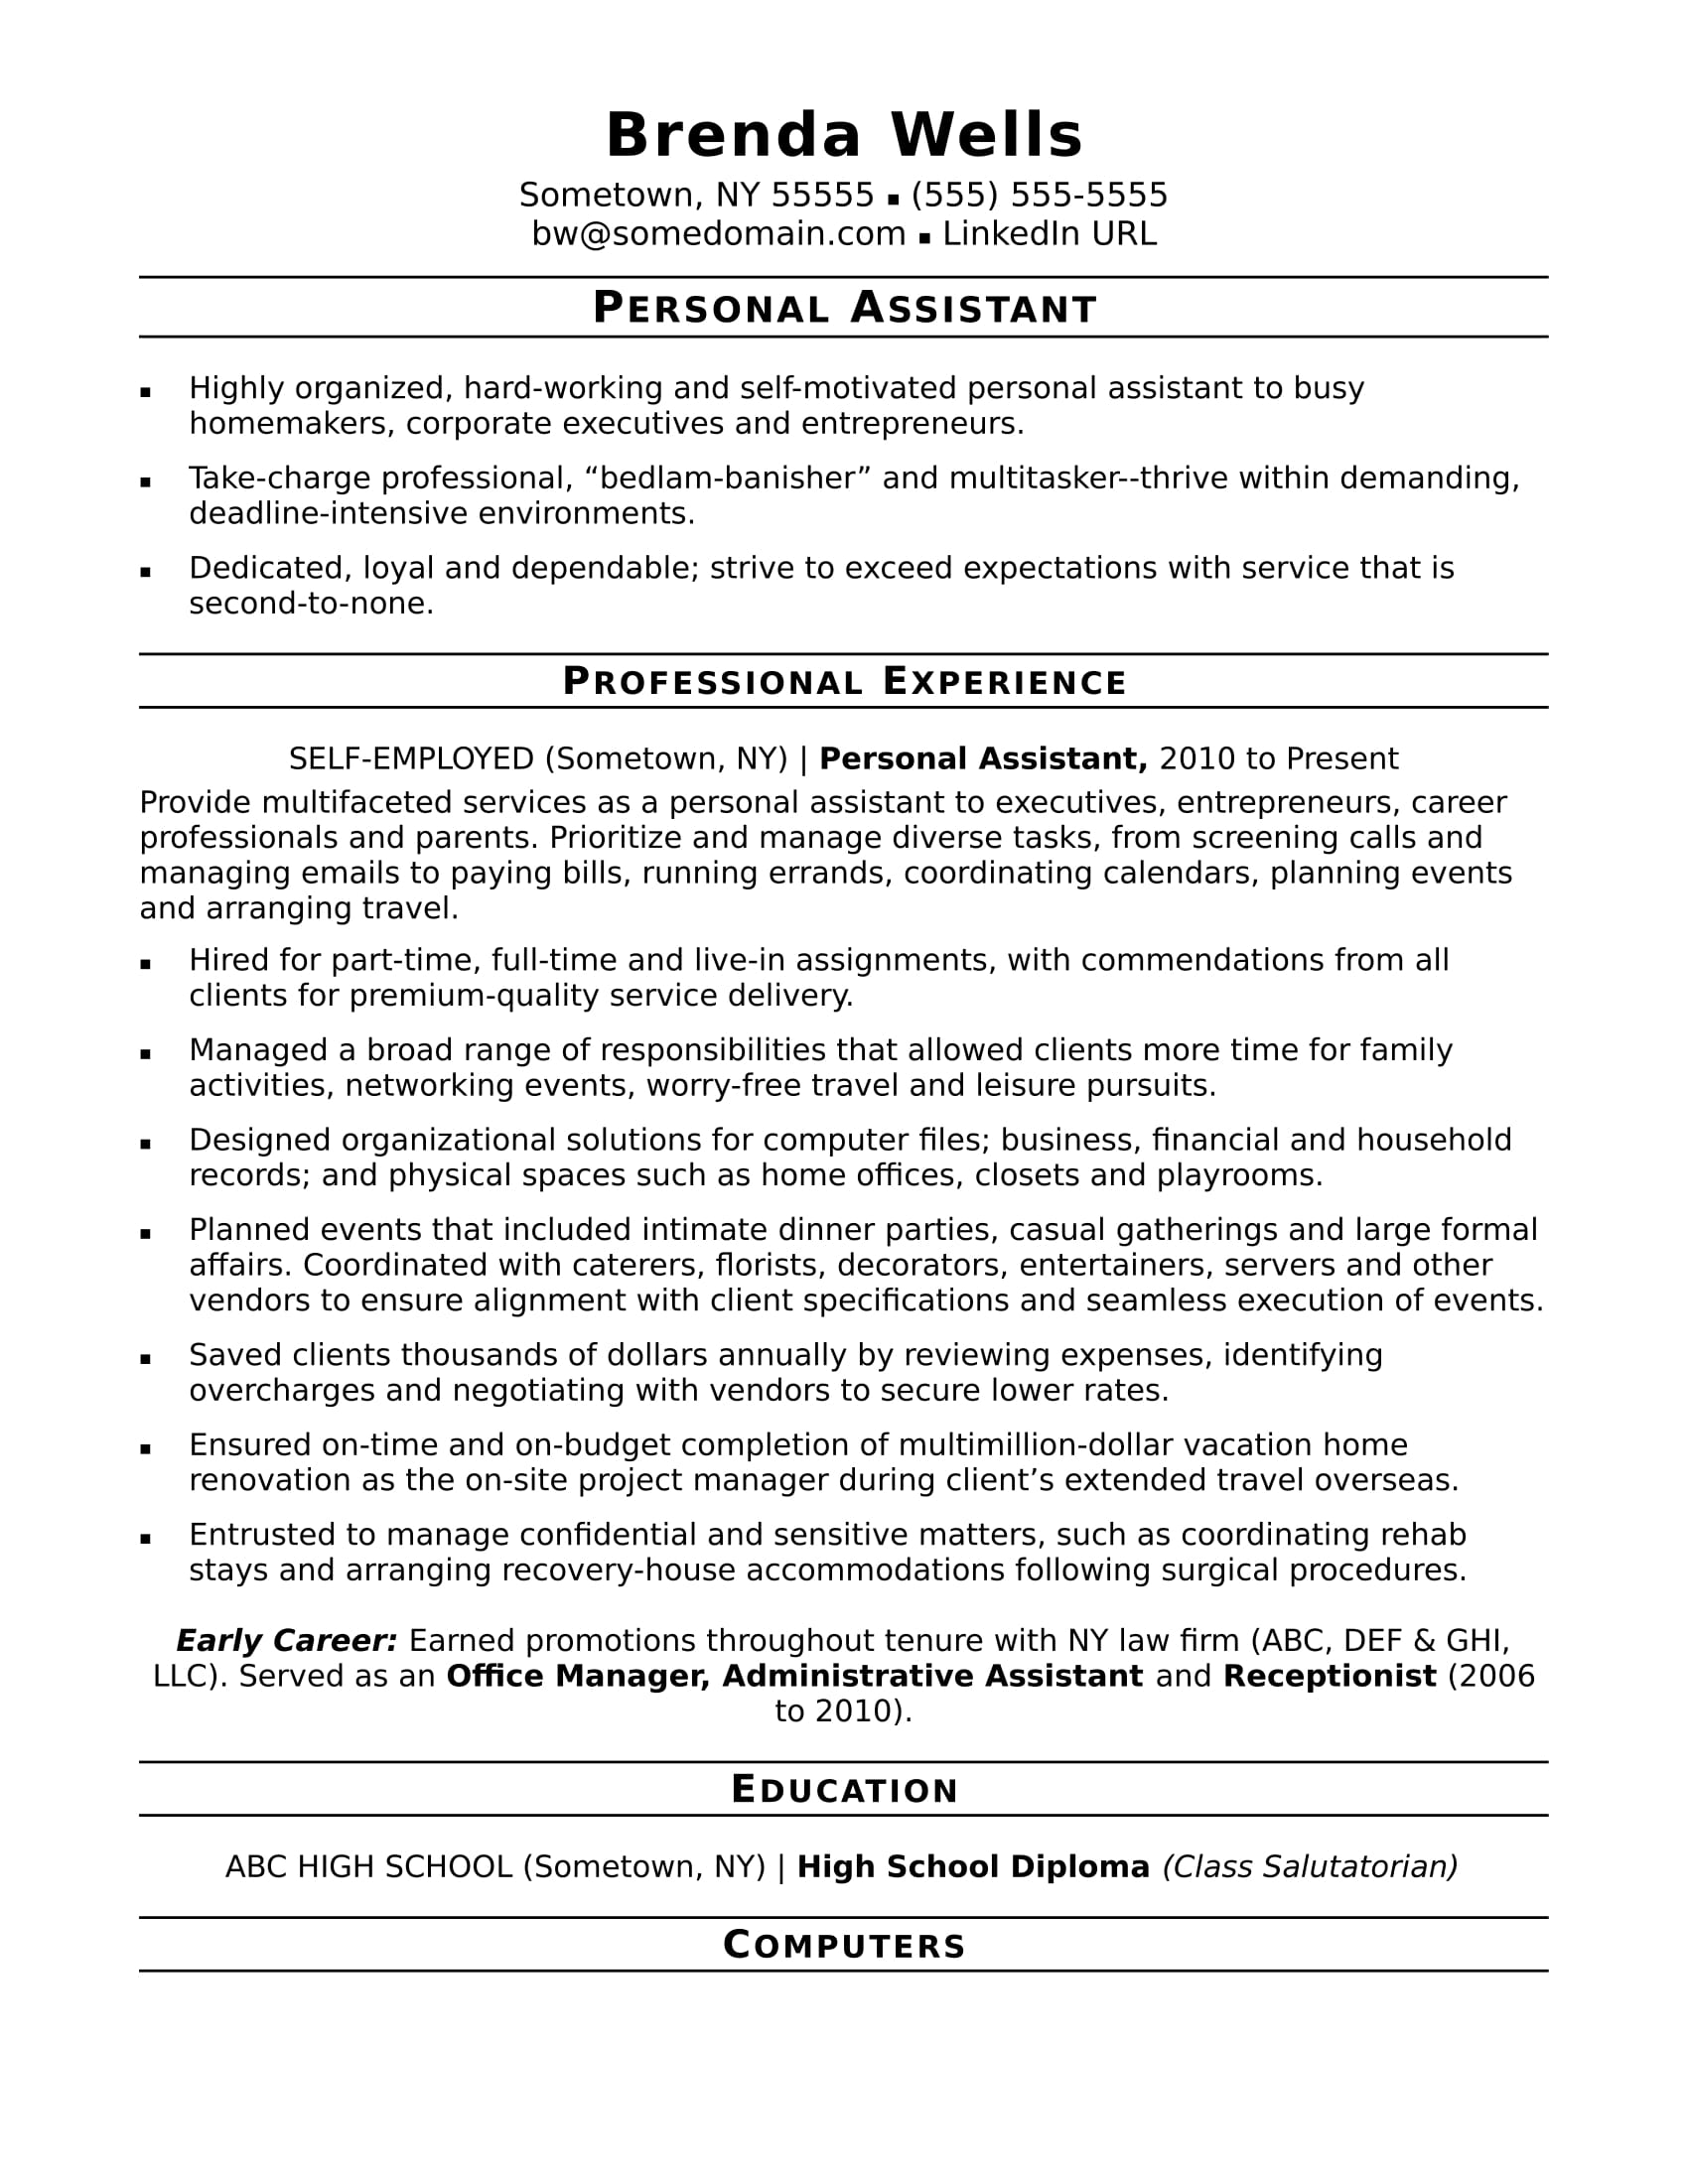 personal assistant resume sample monster self employed medical school application Resume Self Employed Resume Sample